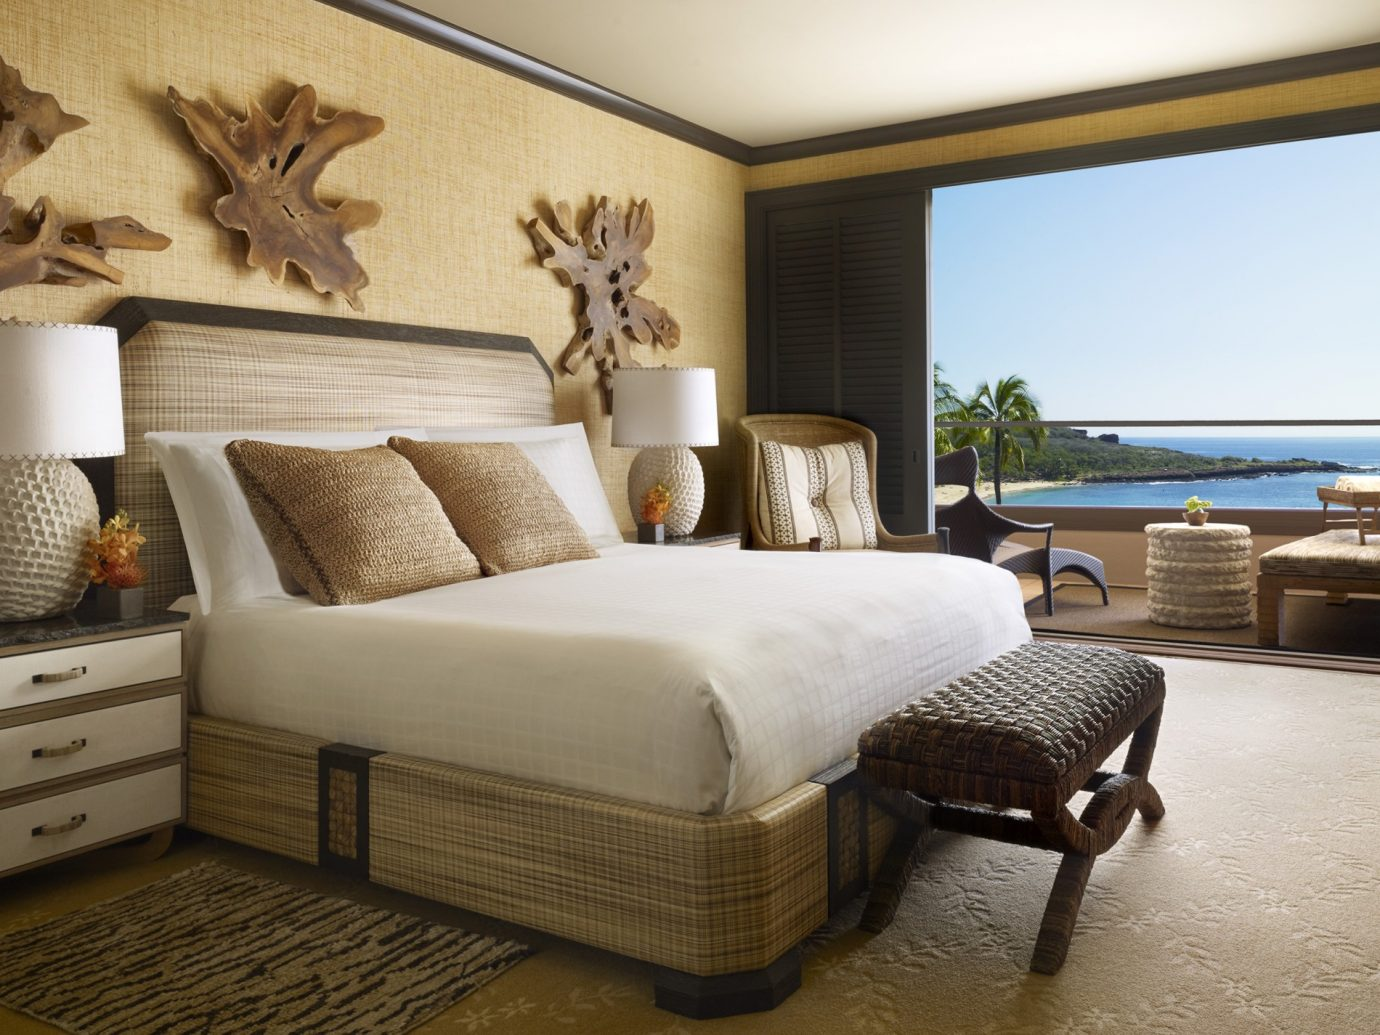 Bedroom at Four Seasons Resort Lanai